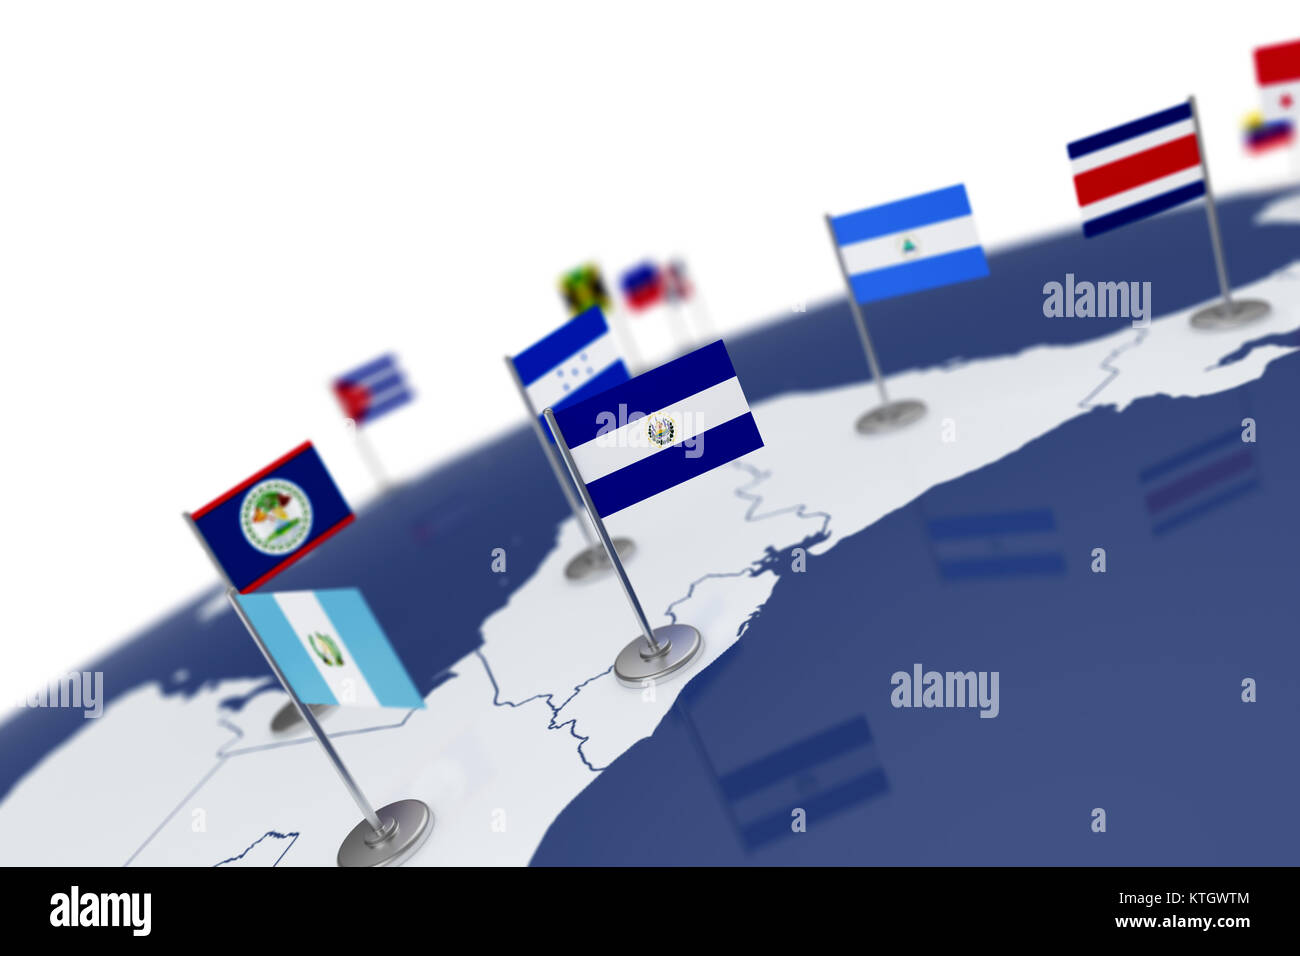 El salvador flag country flag with chrome flagpole on the world map el salvador flag country flag with chrome flagpole on the world map with neighbors countries borders 3d illustration rendering gumiabroncs Gallery